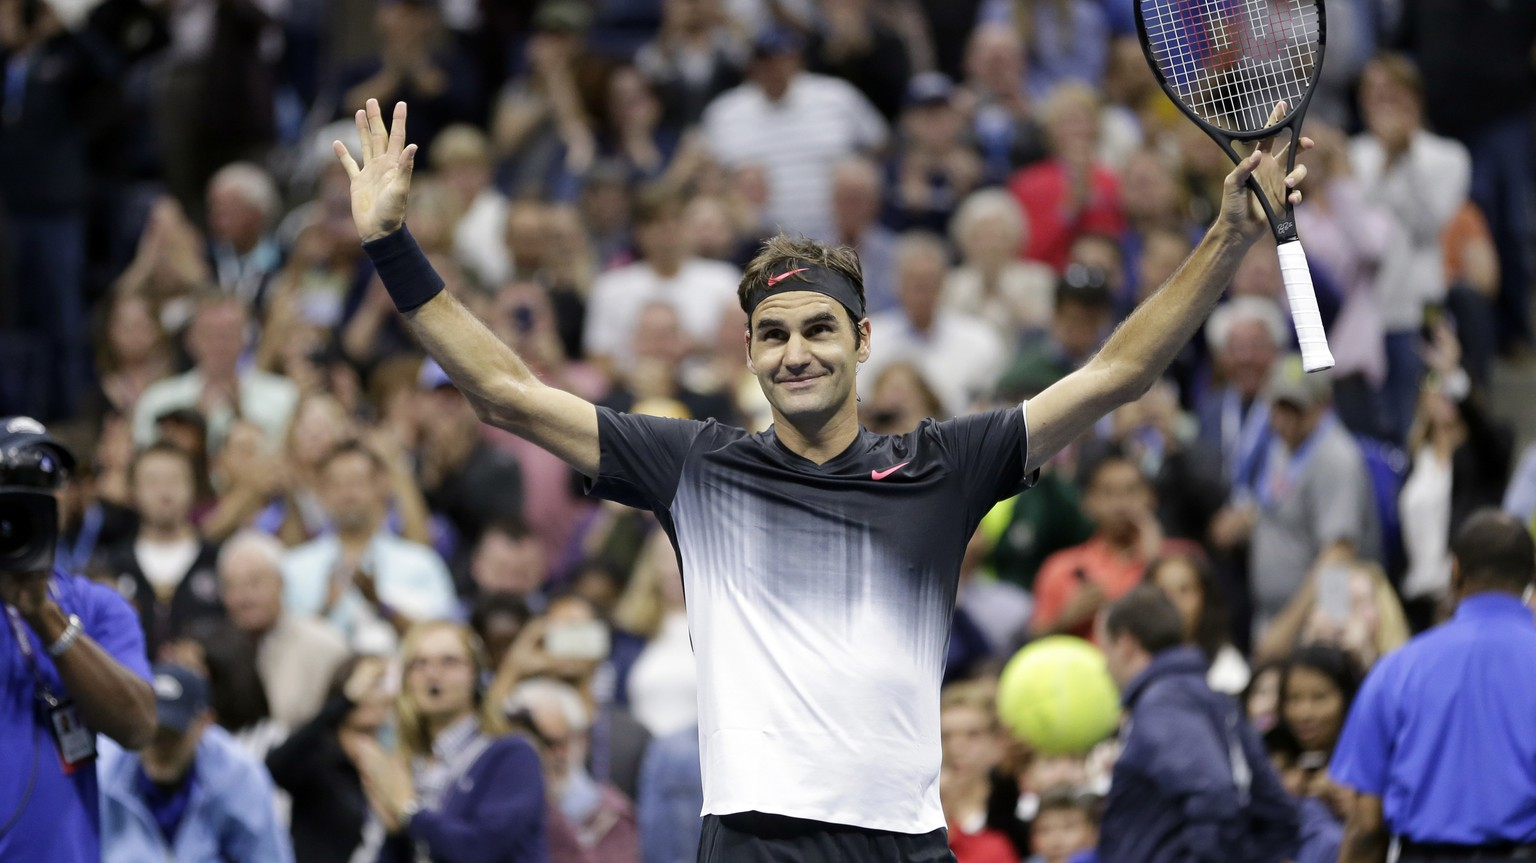 Roger Federer, of Switzerland, gestures to the crowd after defeating Feliciano Lopez, of Spain, during the U.S. Open tennis tournament in New York, Saturday, Sept. 2, 2017. (AP Photo/Seth Wenig)